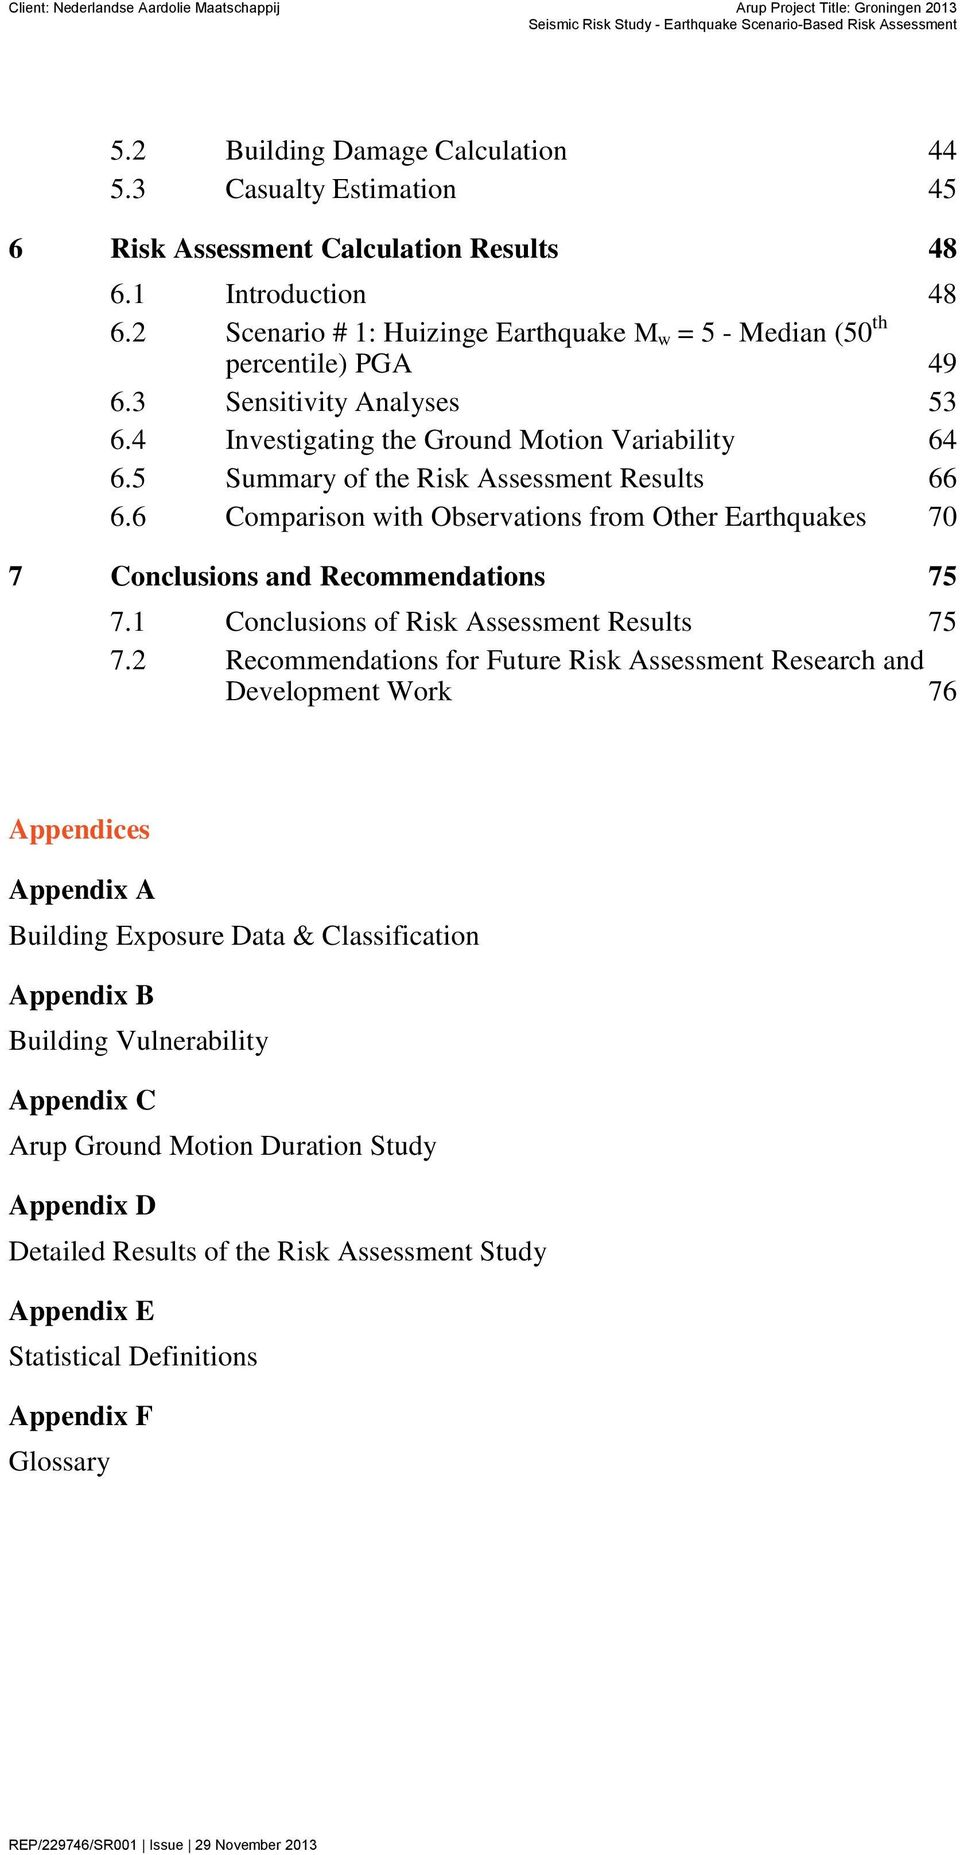 5 Summary of the Risk Assessment Results 66 6.6 Comparison with Observations from Other Earthquakes 70 7 Conclusions and Recommendations 75 7.1 Conclusions of Risk Assessment Results 75 7.